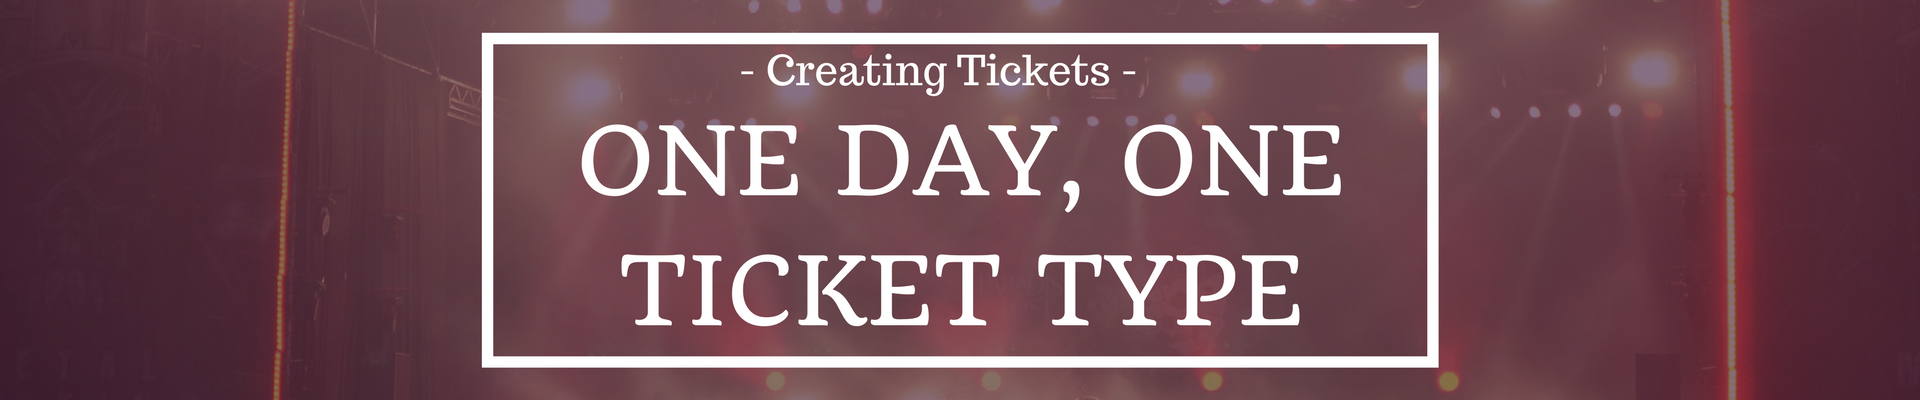 creating tickets